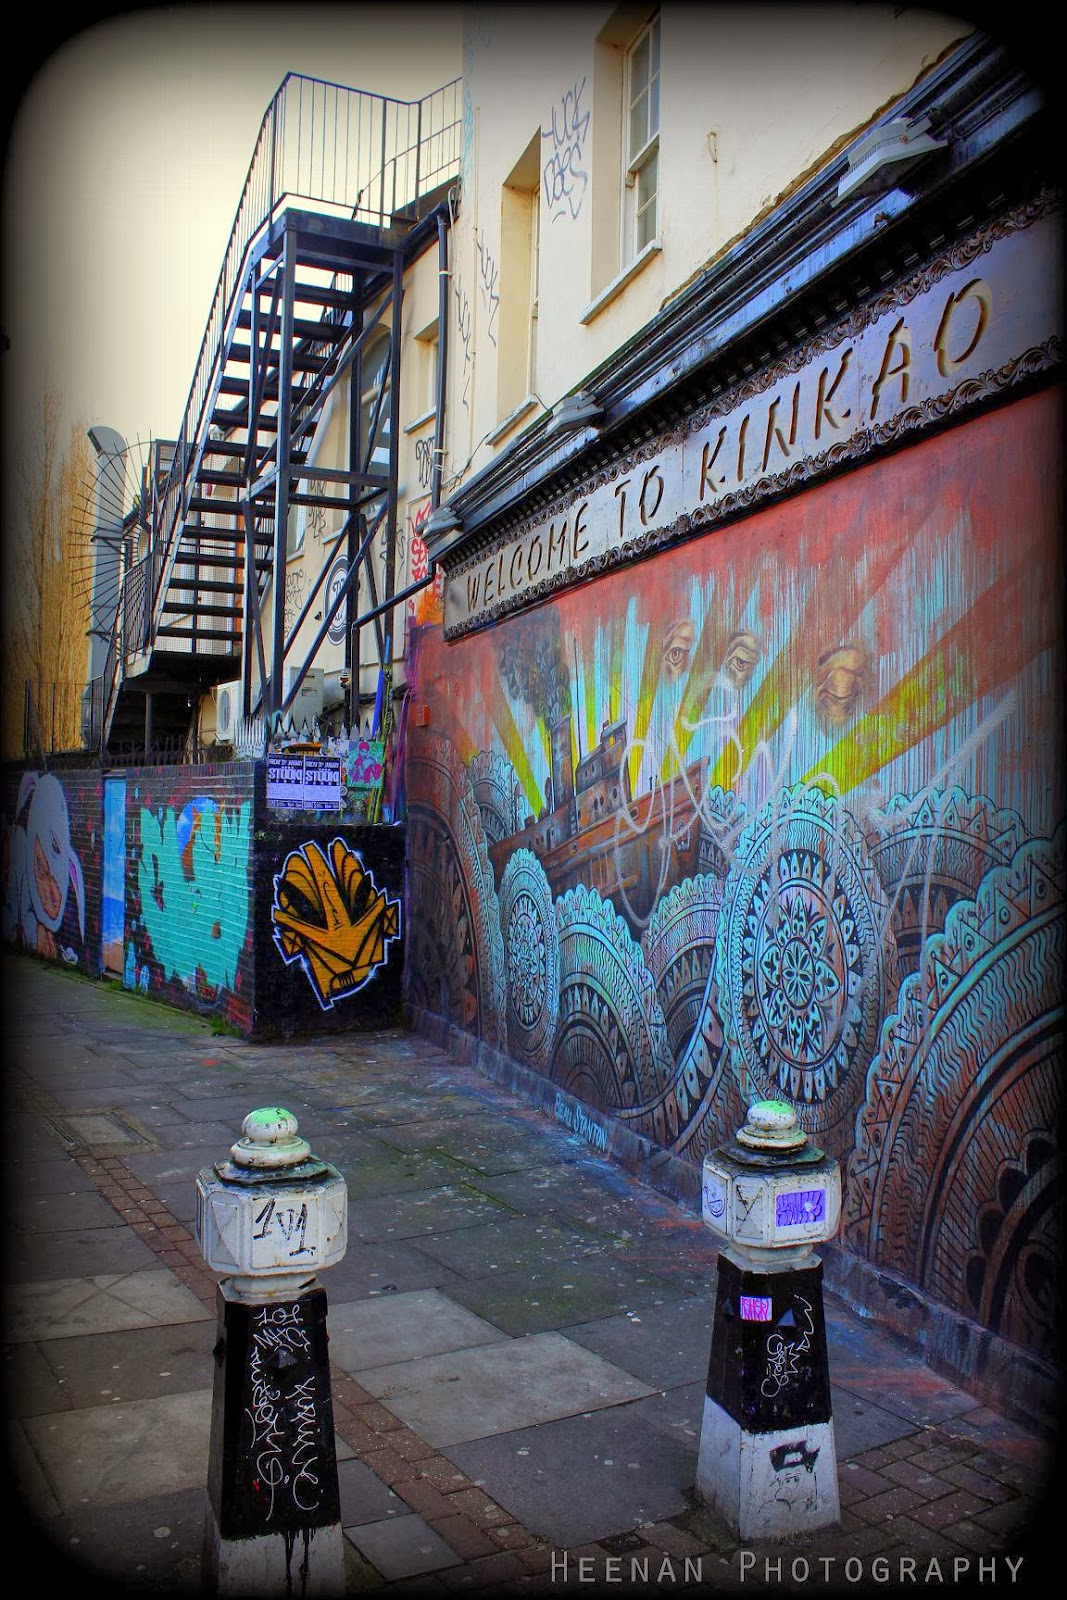 """Welcome to Kinkao"", urban photography in Brick Lane by photographer Tom Heenan."